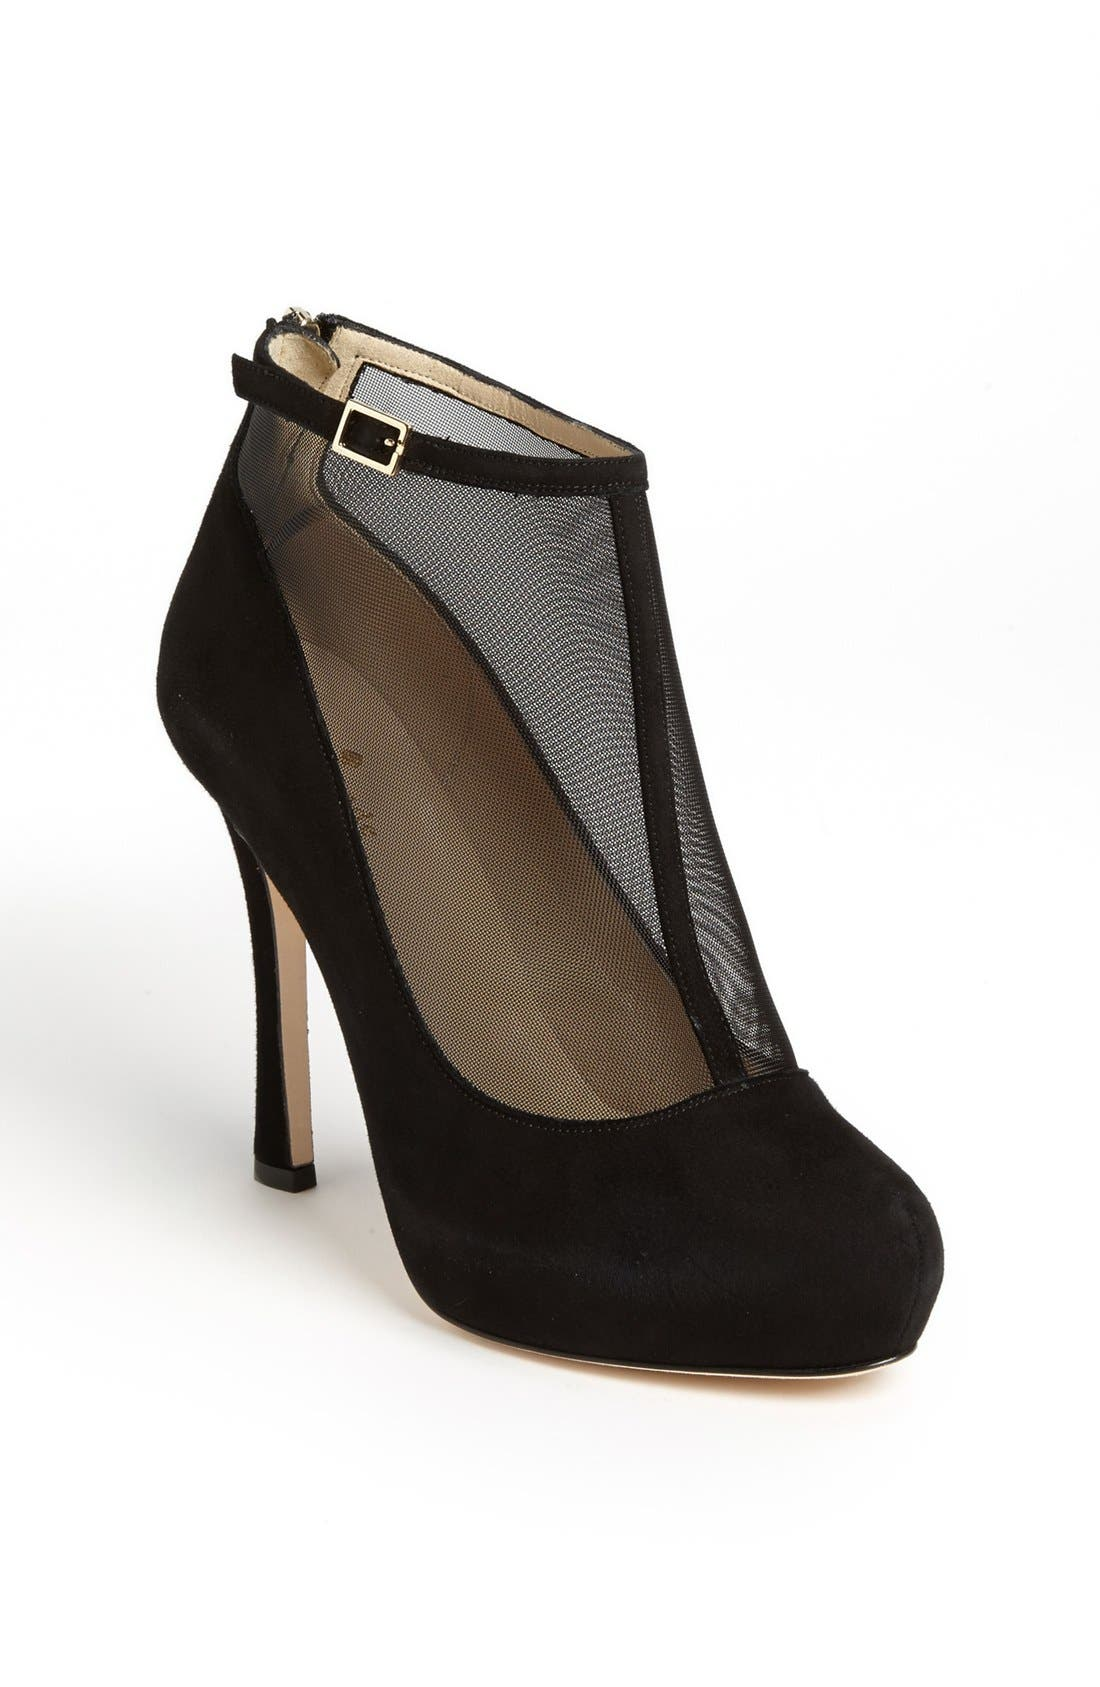 Main Image - kate spade new york 'neveah' bootie